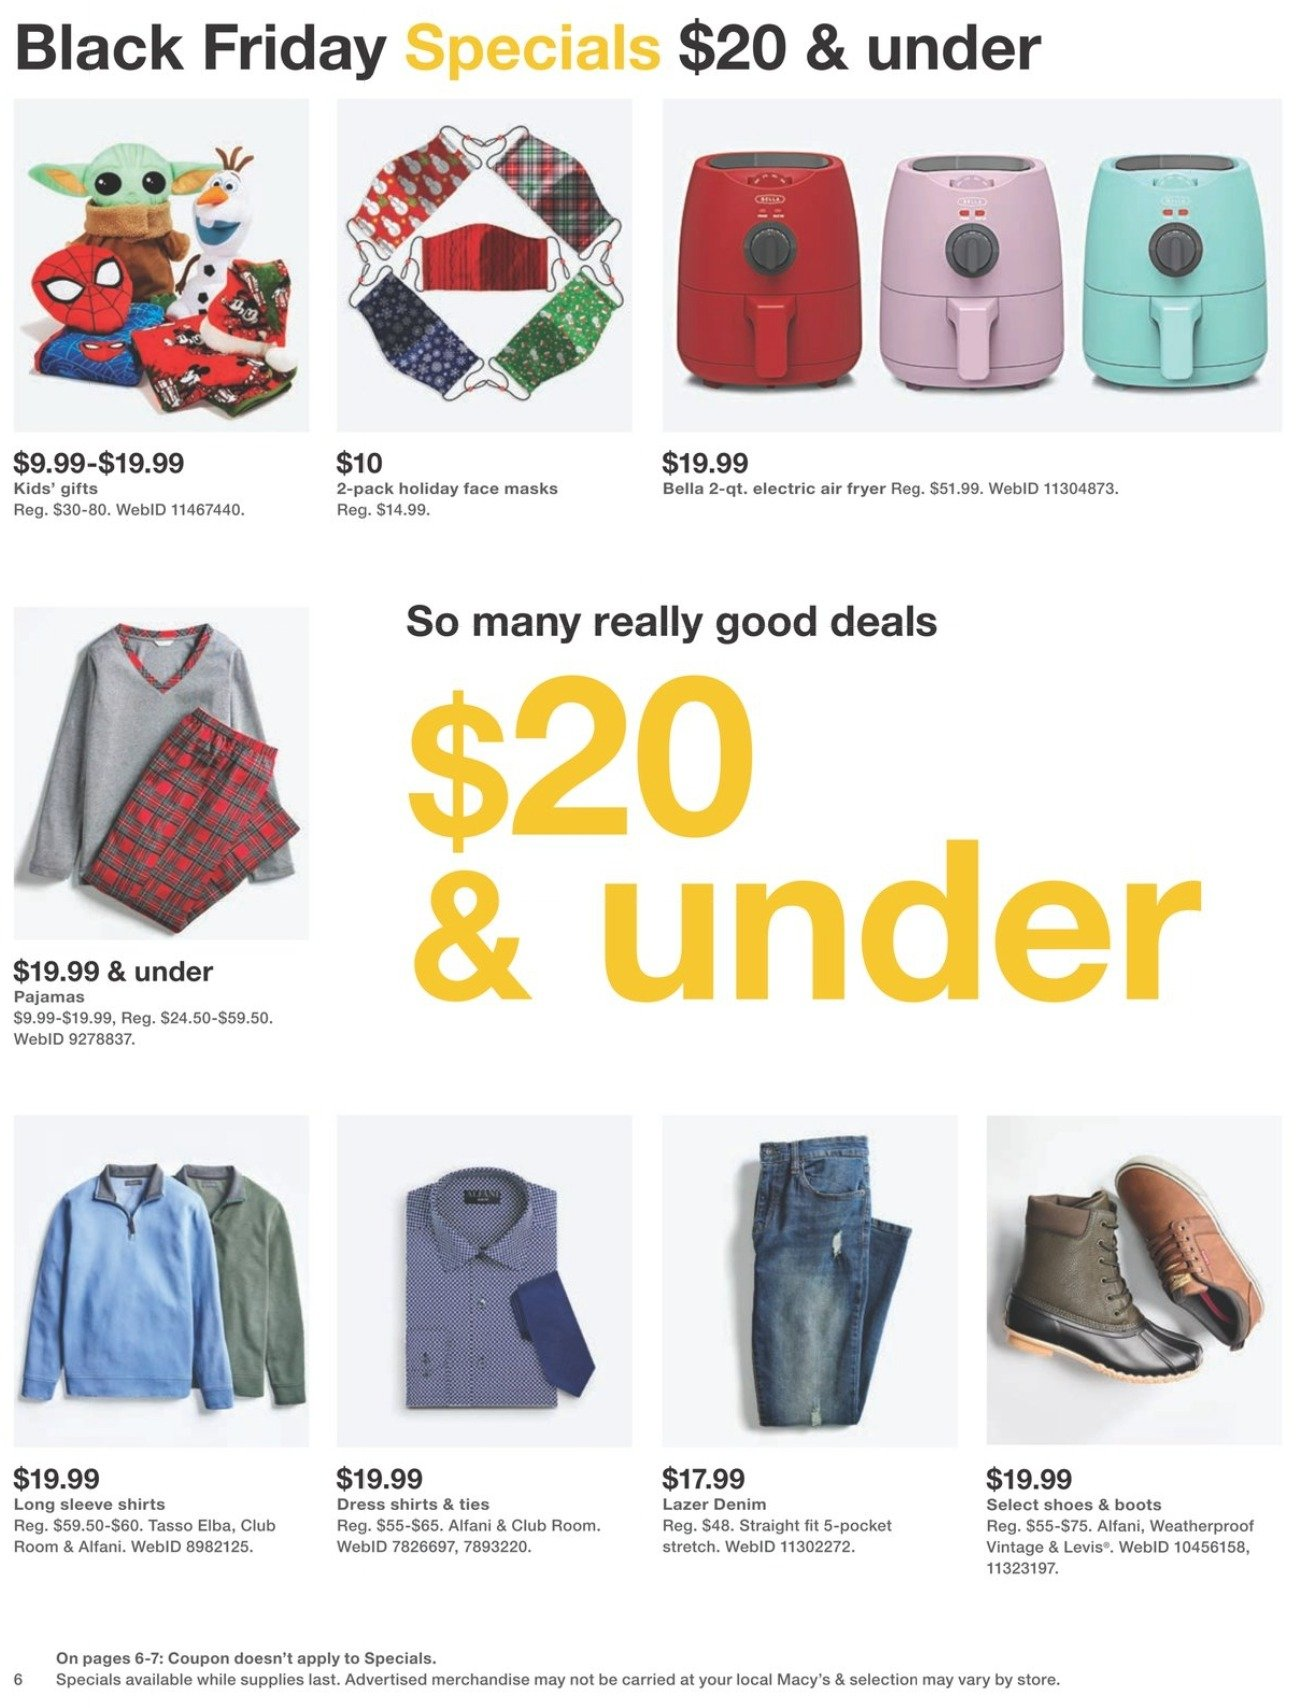 Macy's Black Friday 2020 Page 6